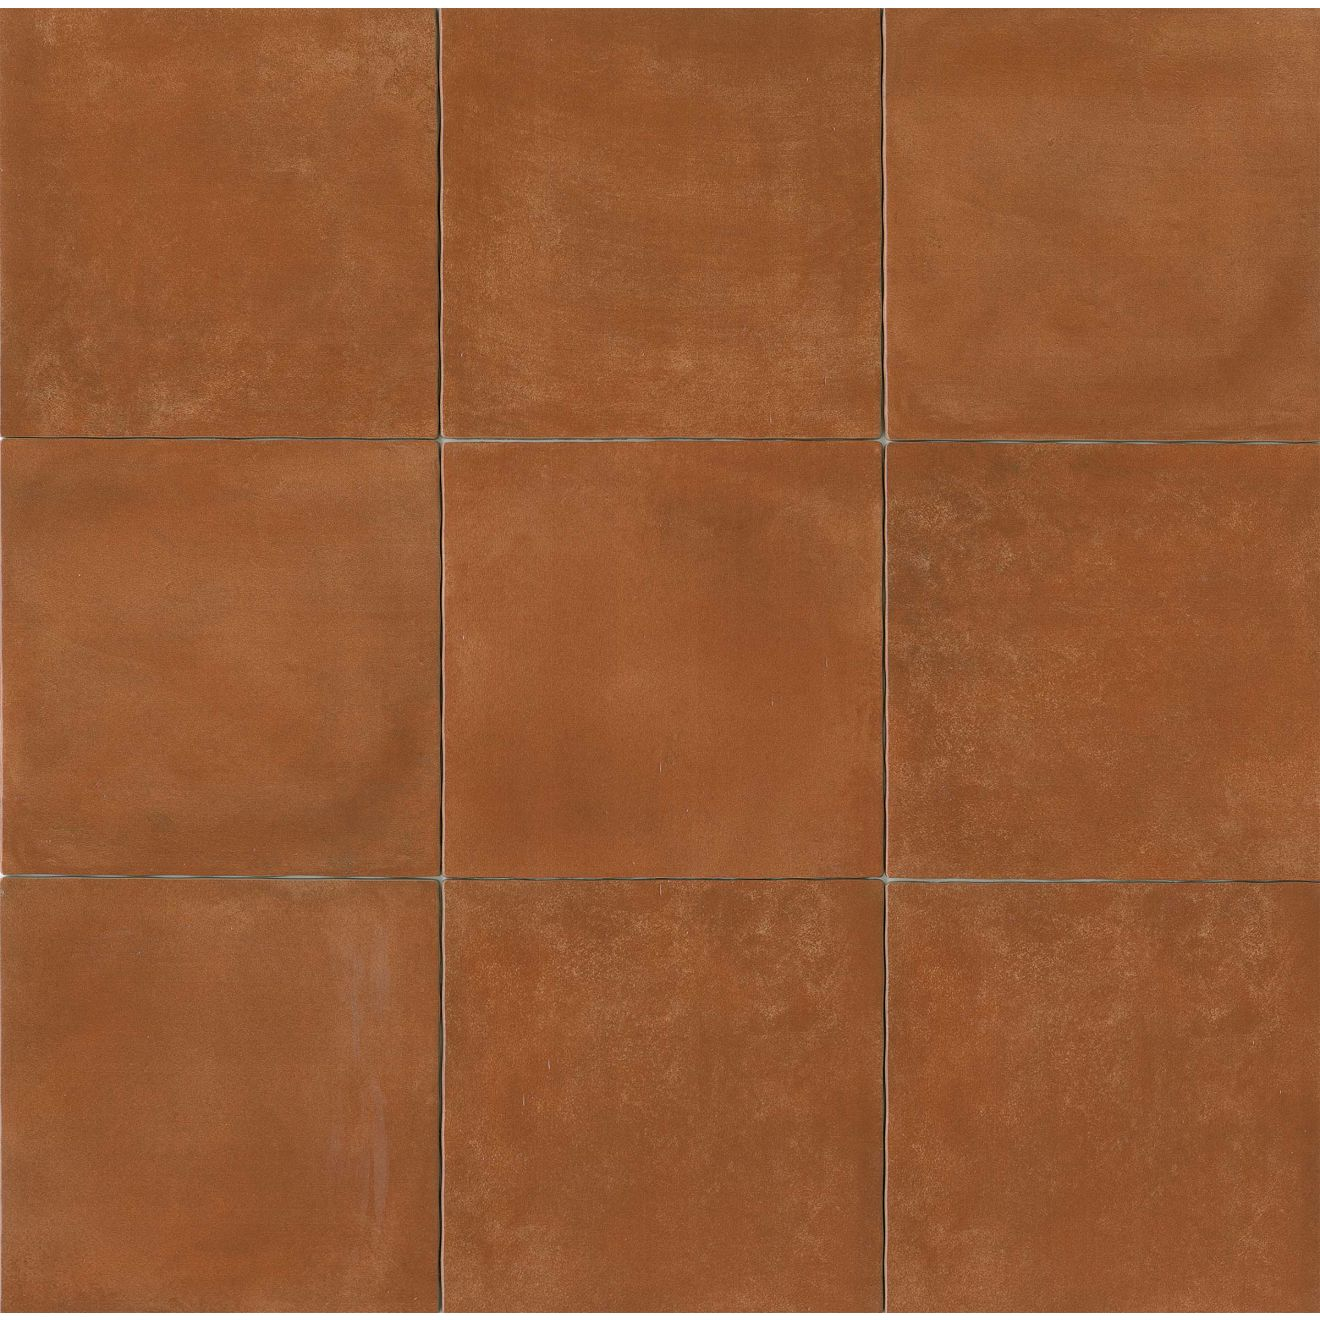 Cotto Nature 14 Quot X 14 Quot Floor Amp Wall Tile In Sicilia